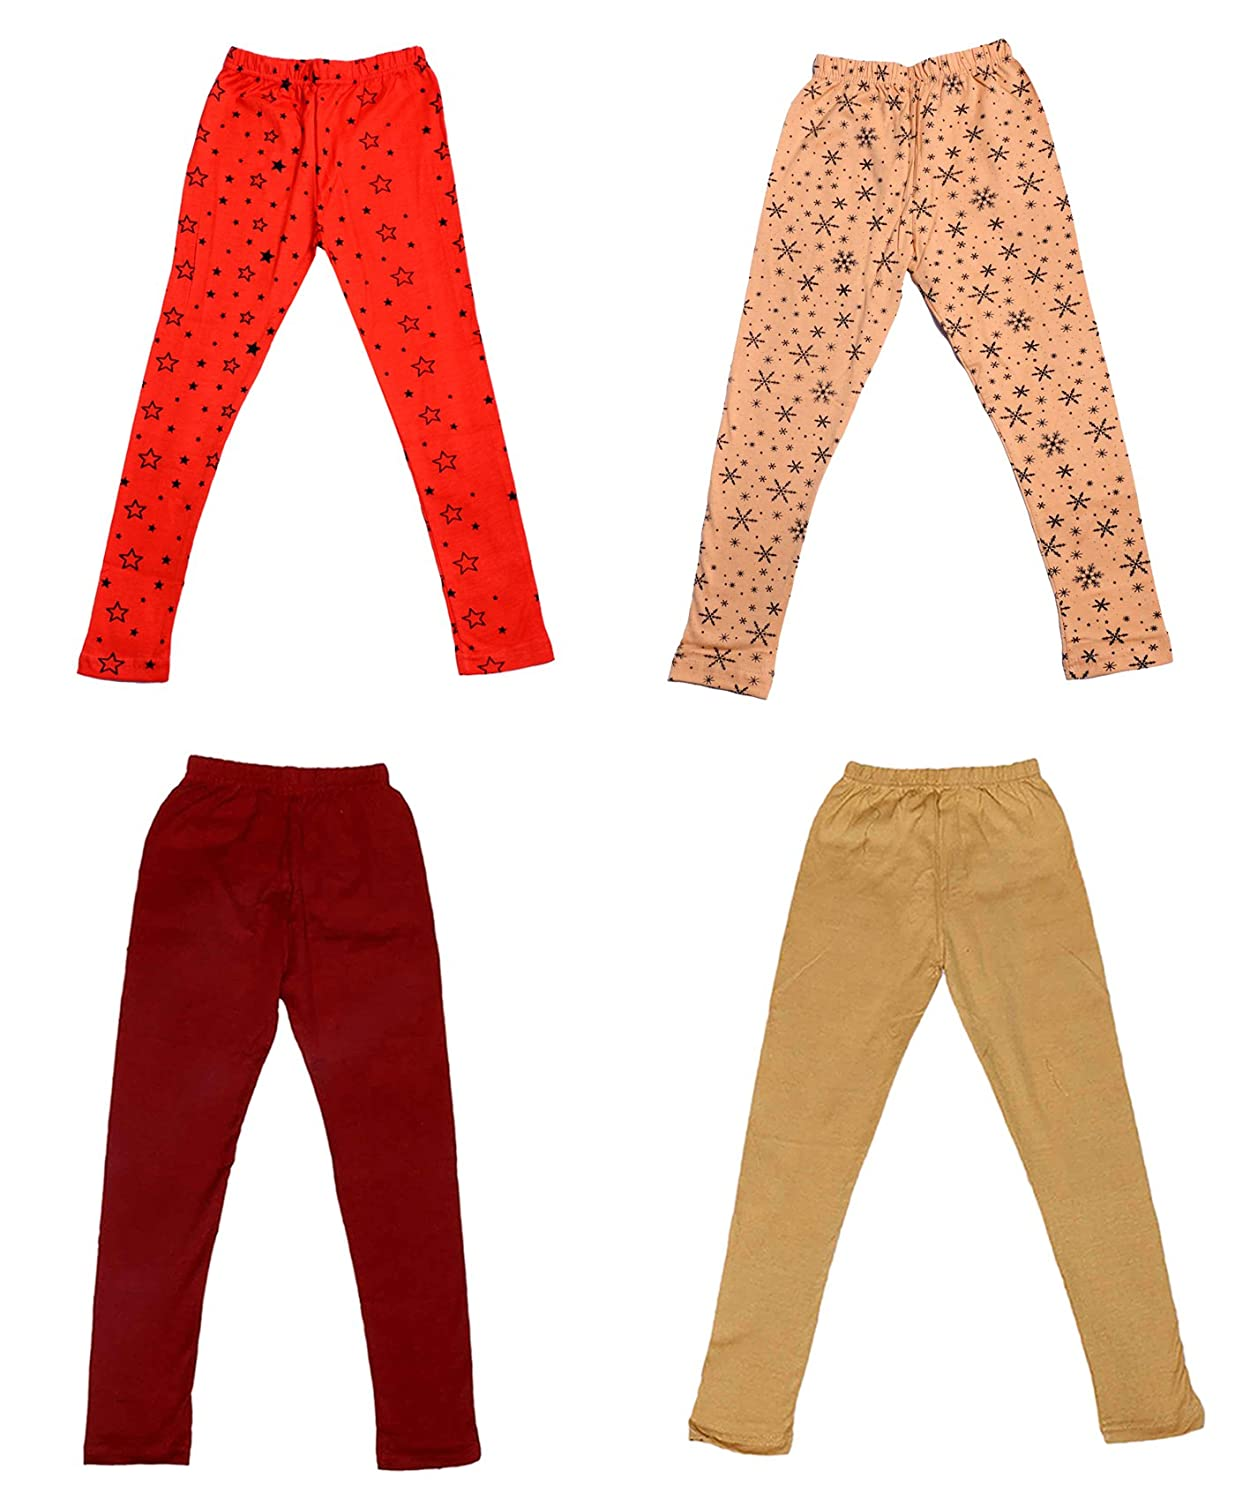 Pack Of 4 /_Multicolor/_Size-3-5 Years/_71400011619-IW-P4-24 and 2 Cotton Printed Legging Pants Indistar Girls 2 Cotton Solid Legging Pants